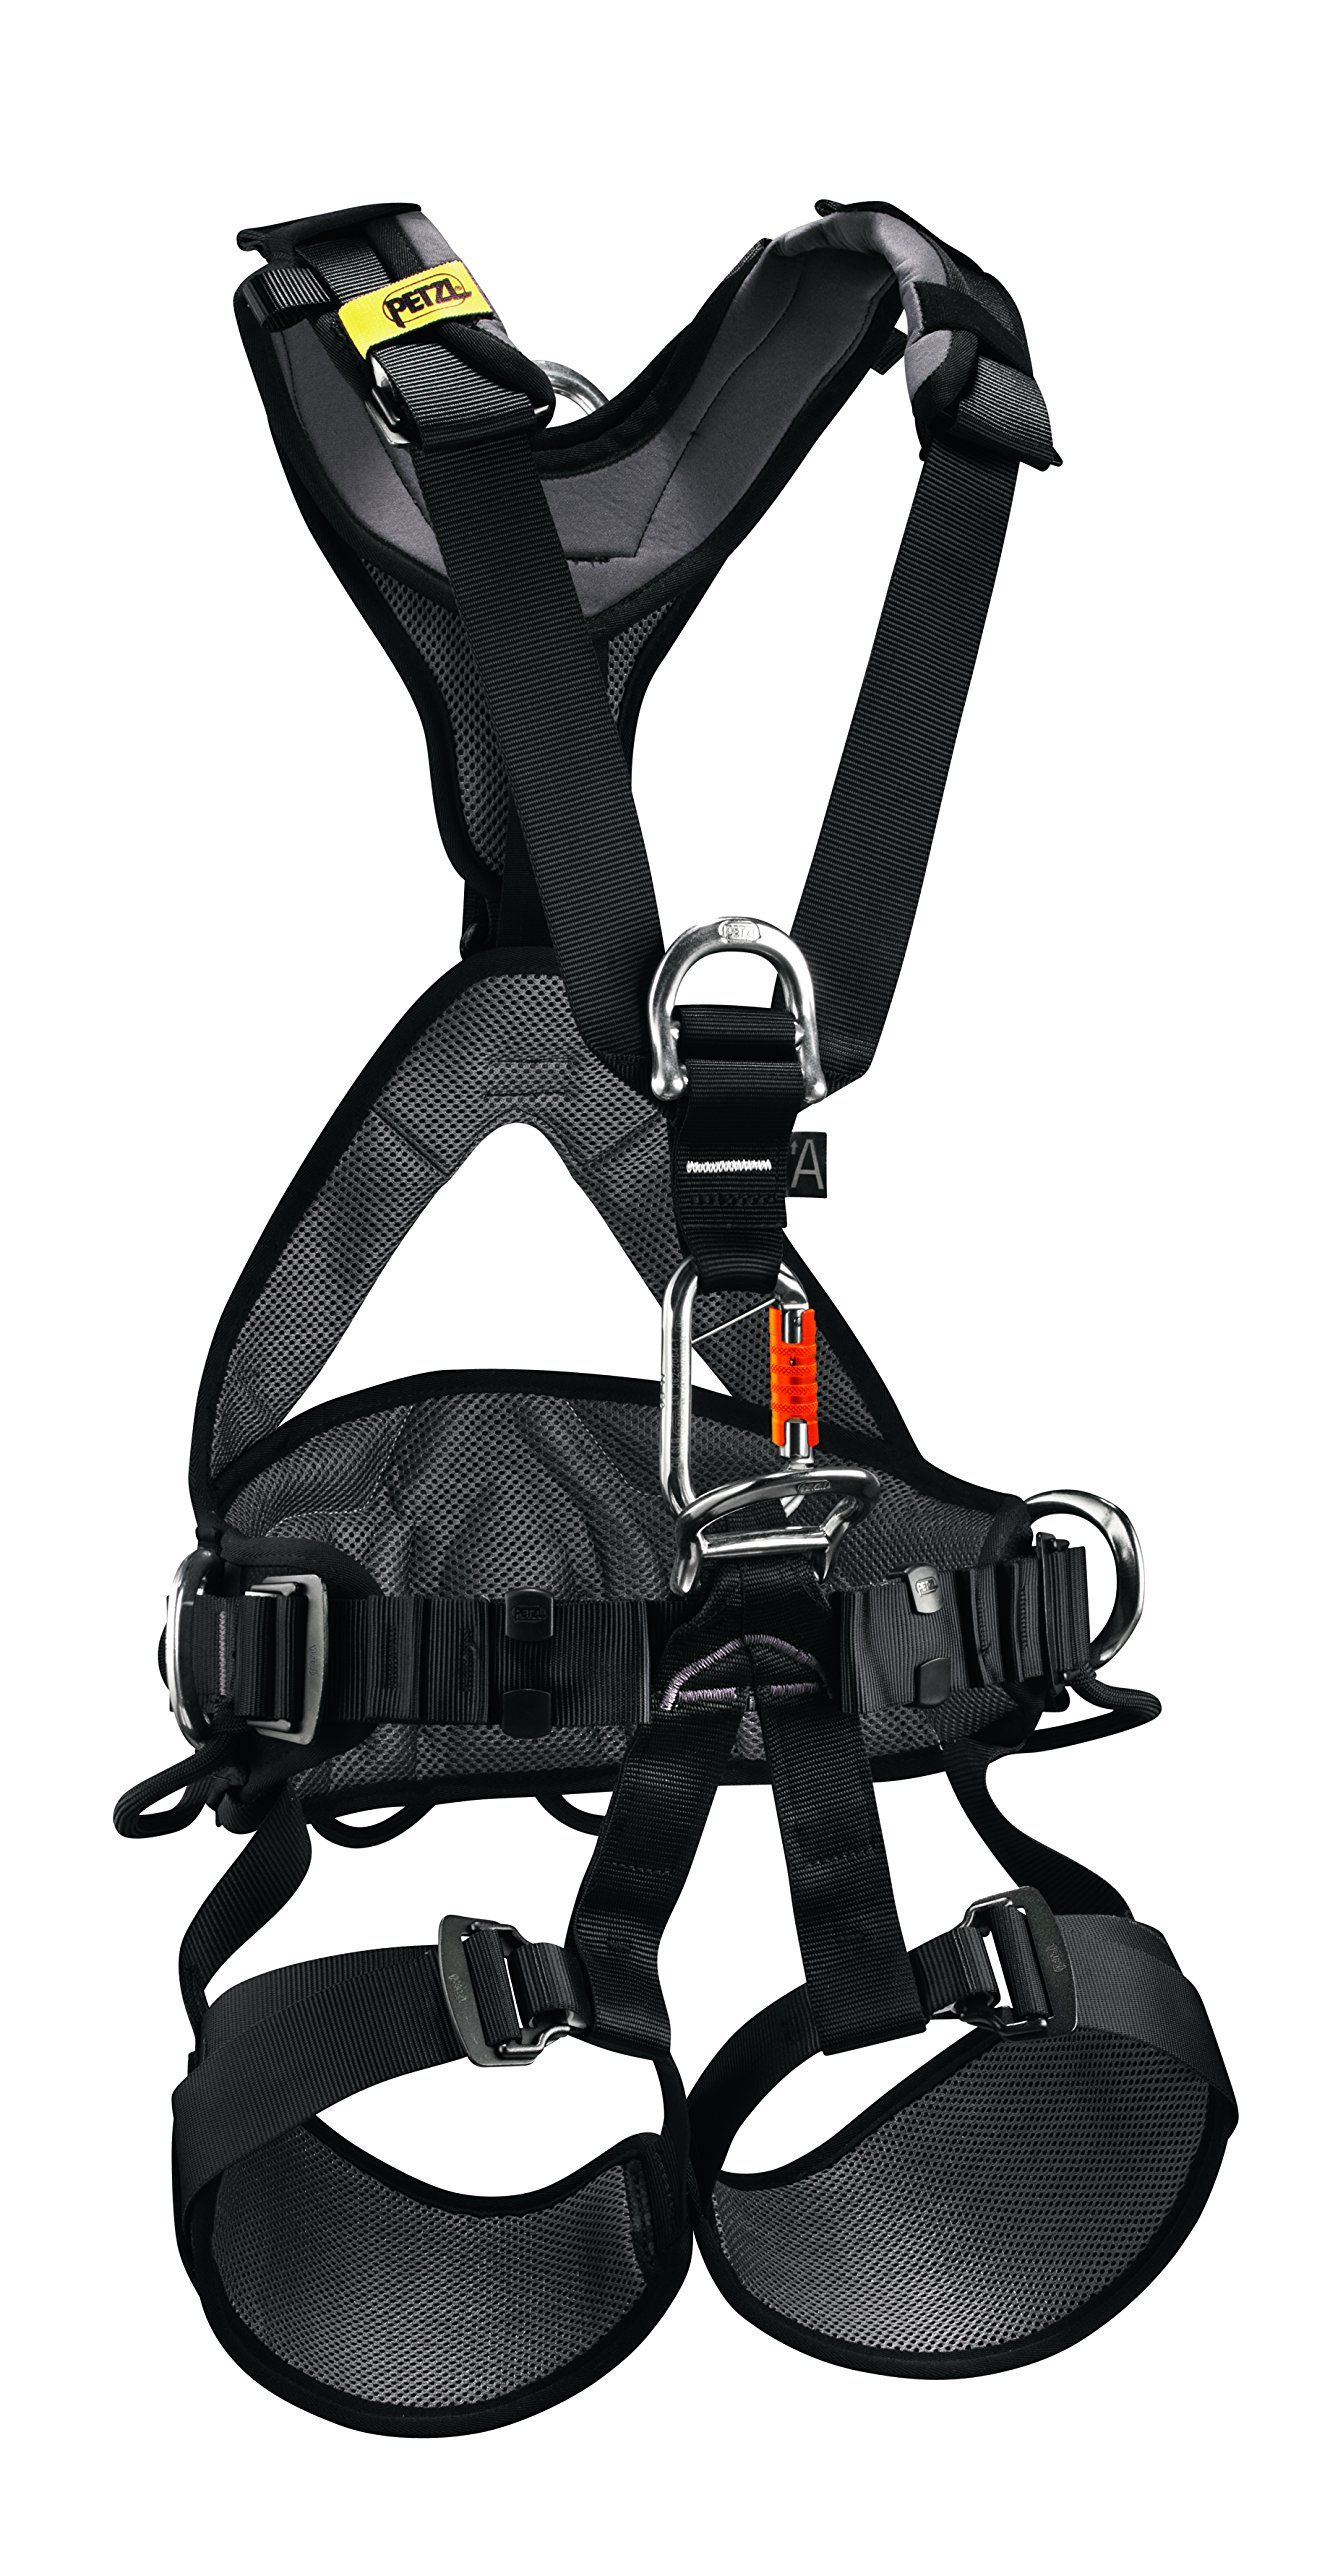 PETZL - AVAO BOD International Version, Comfortable Harness for Fall Arrest, Size 2